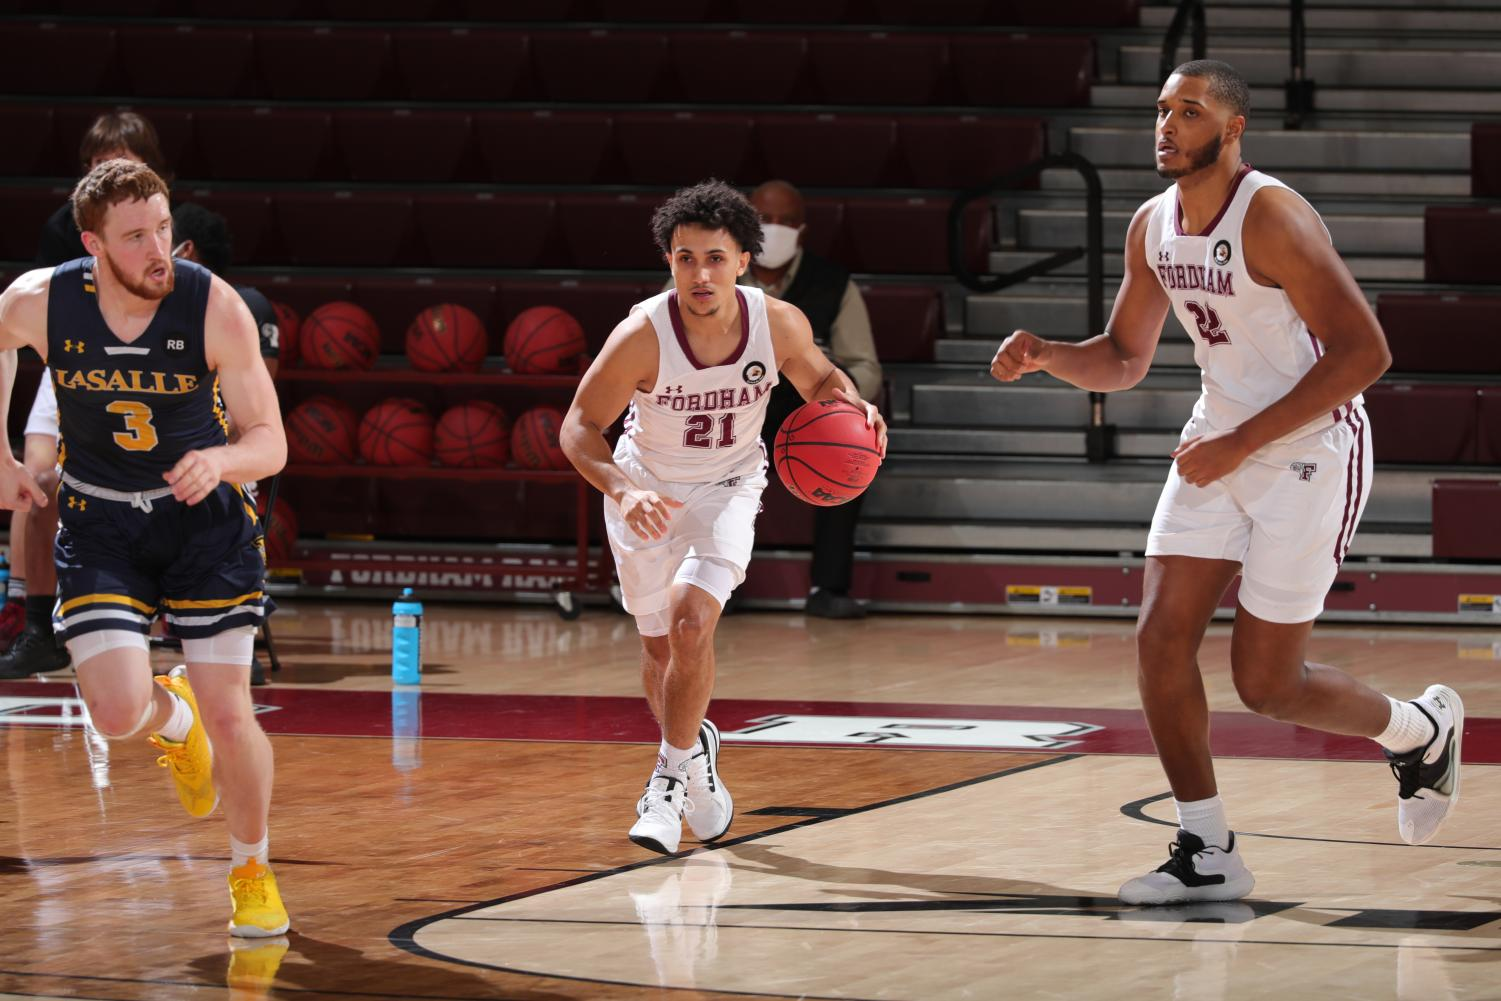 josh navarro brings a basketball down the court against la salle. a la salle player is to his left and a fordham player is to his right